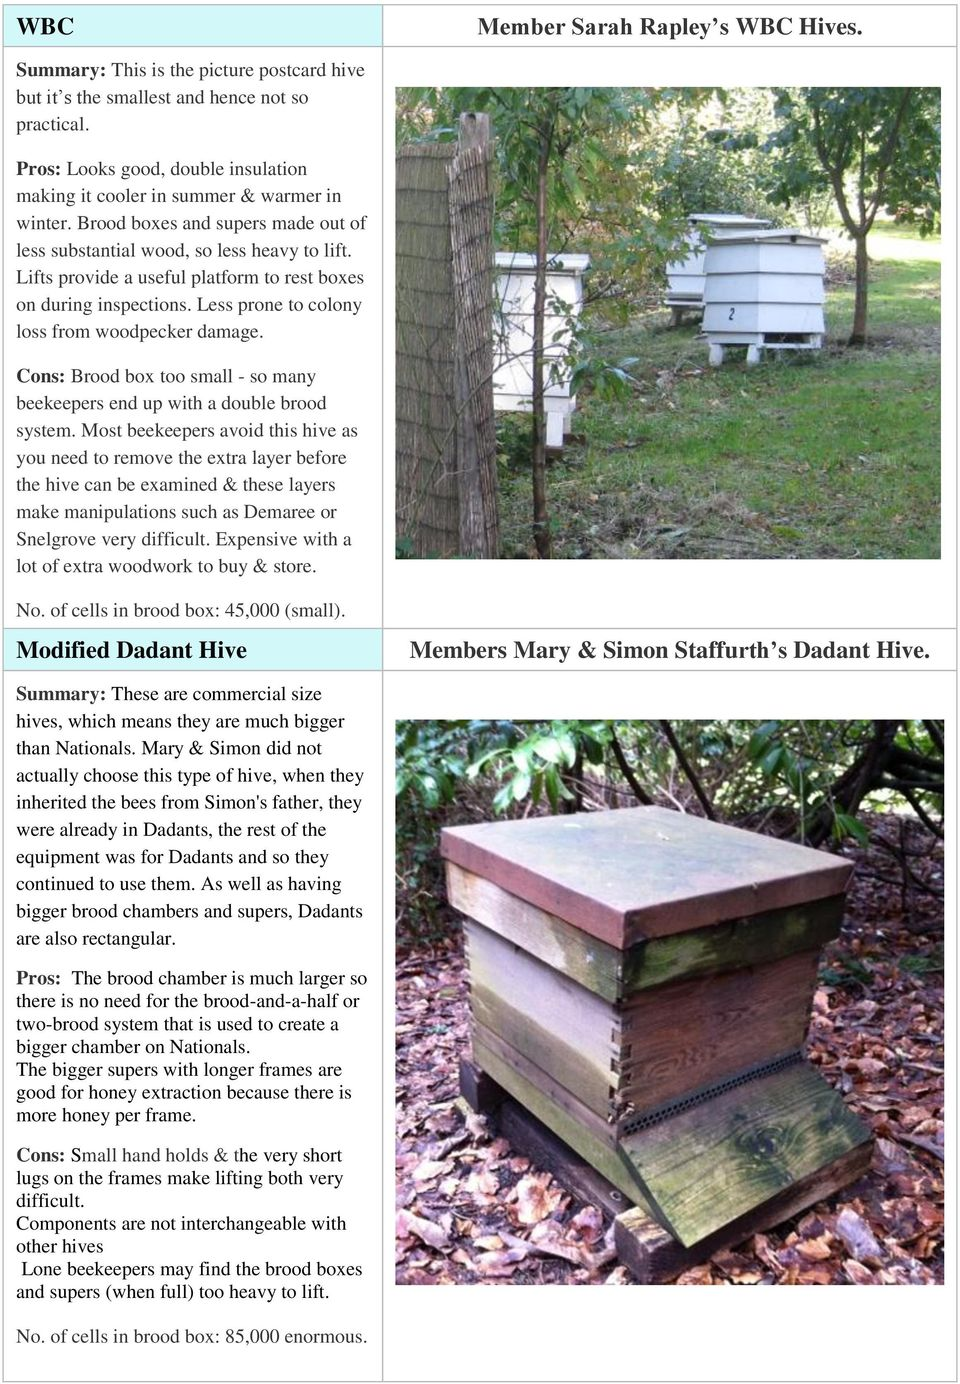 Lifts provide a useful platform to rest boxes on during inspections. Less prone to colony loss from woodpecker damage. Cons: Brood box too small - so many beekeepers end up with a double brood system.